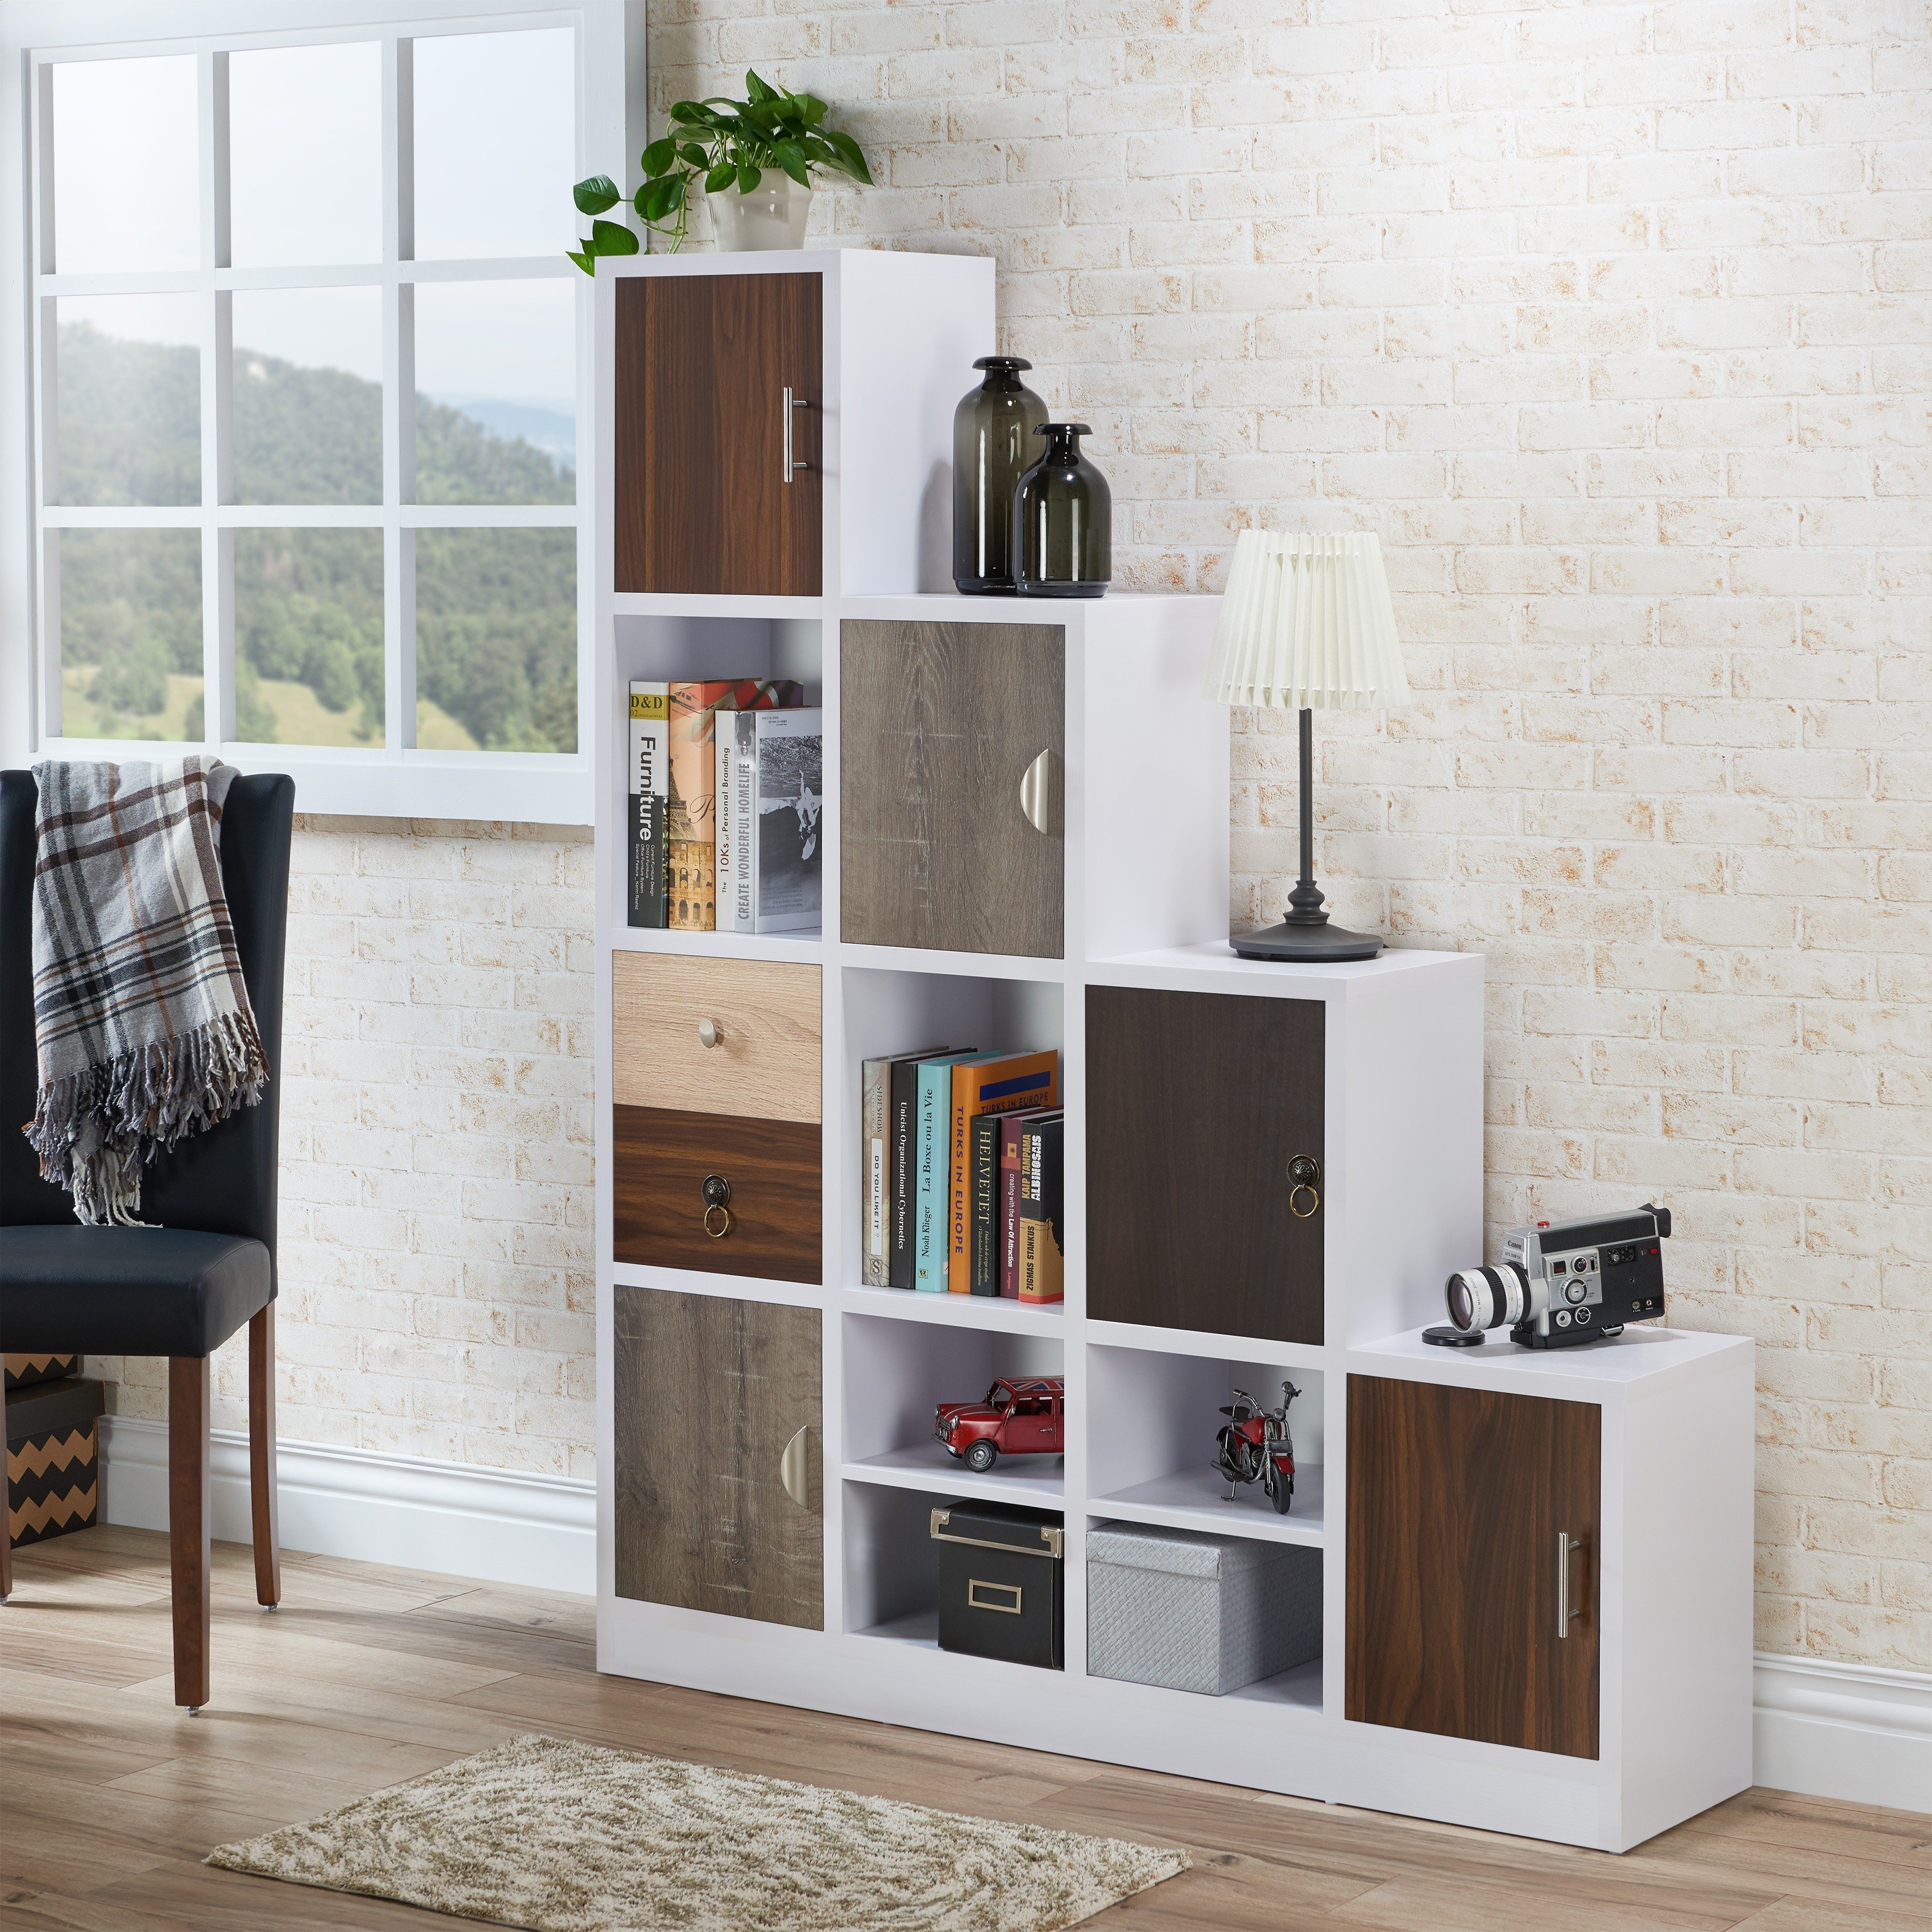 Buy Bookshelves & Bookcases Online At Overstock | Our Best with regard to Annabelle Cream 70 Inch Tv Stands (Image 8 of 30)